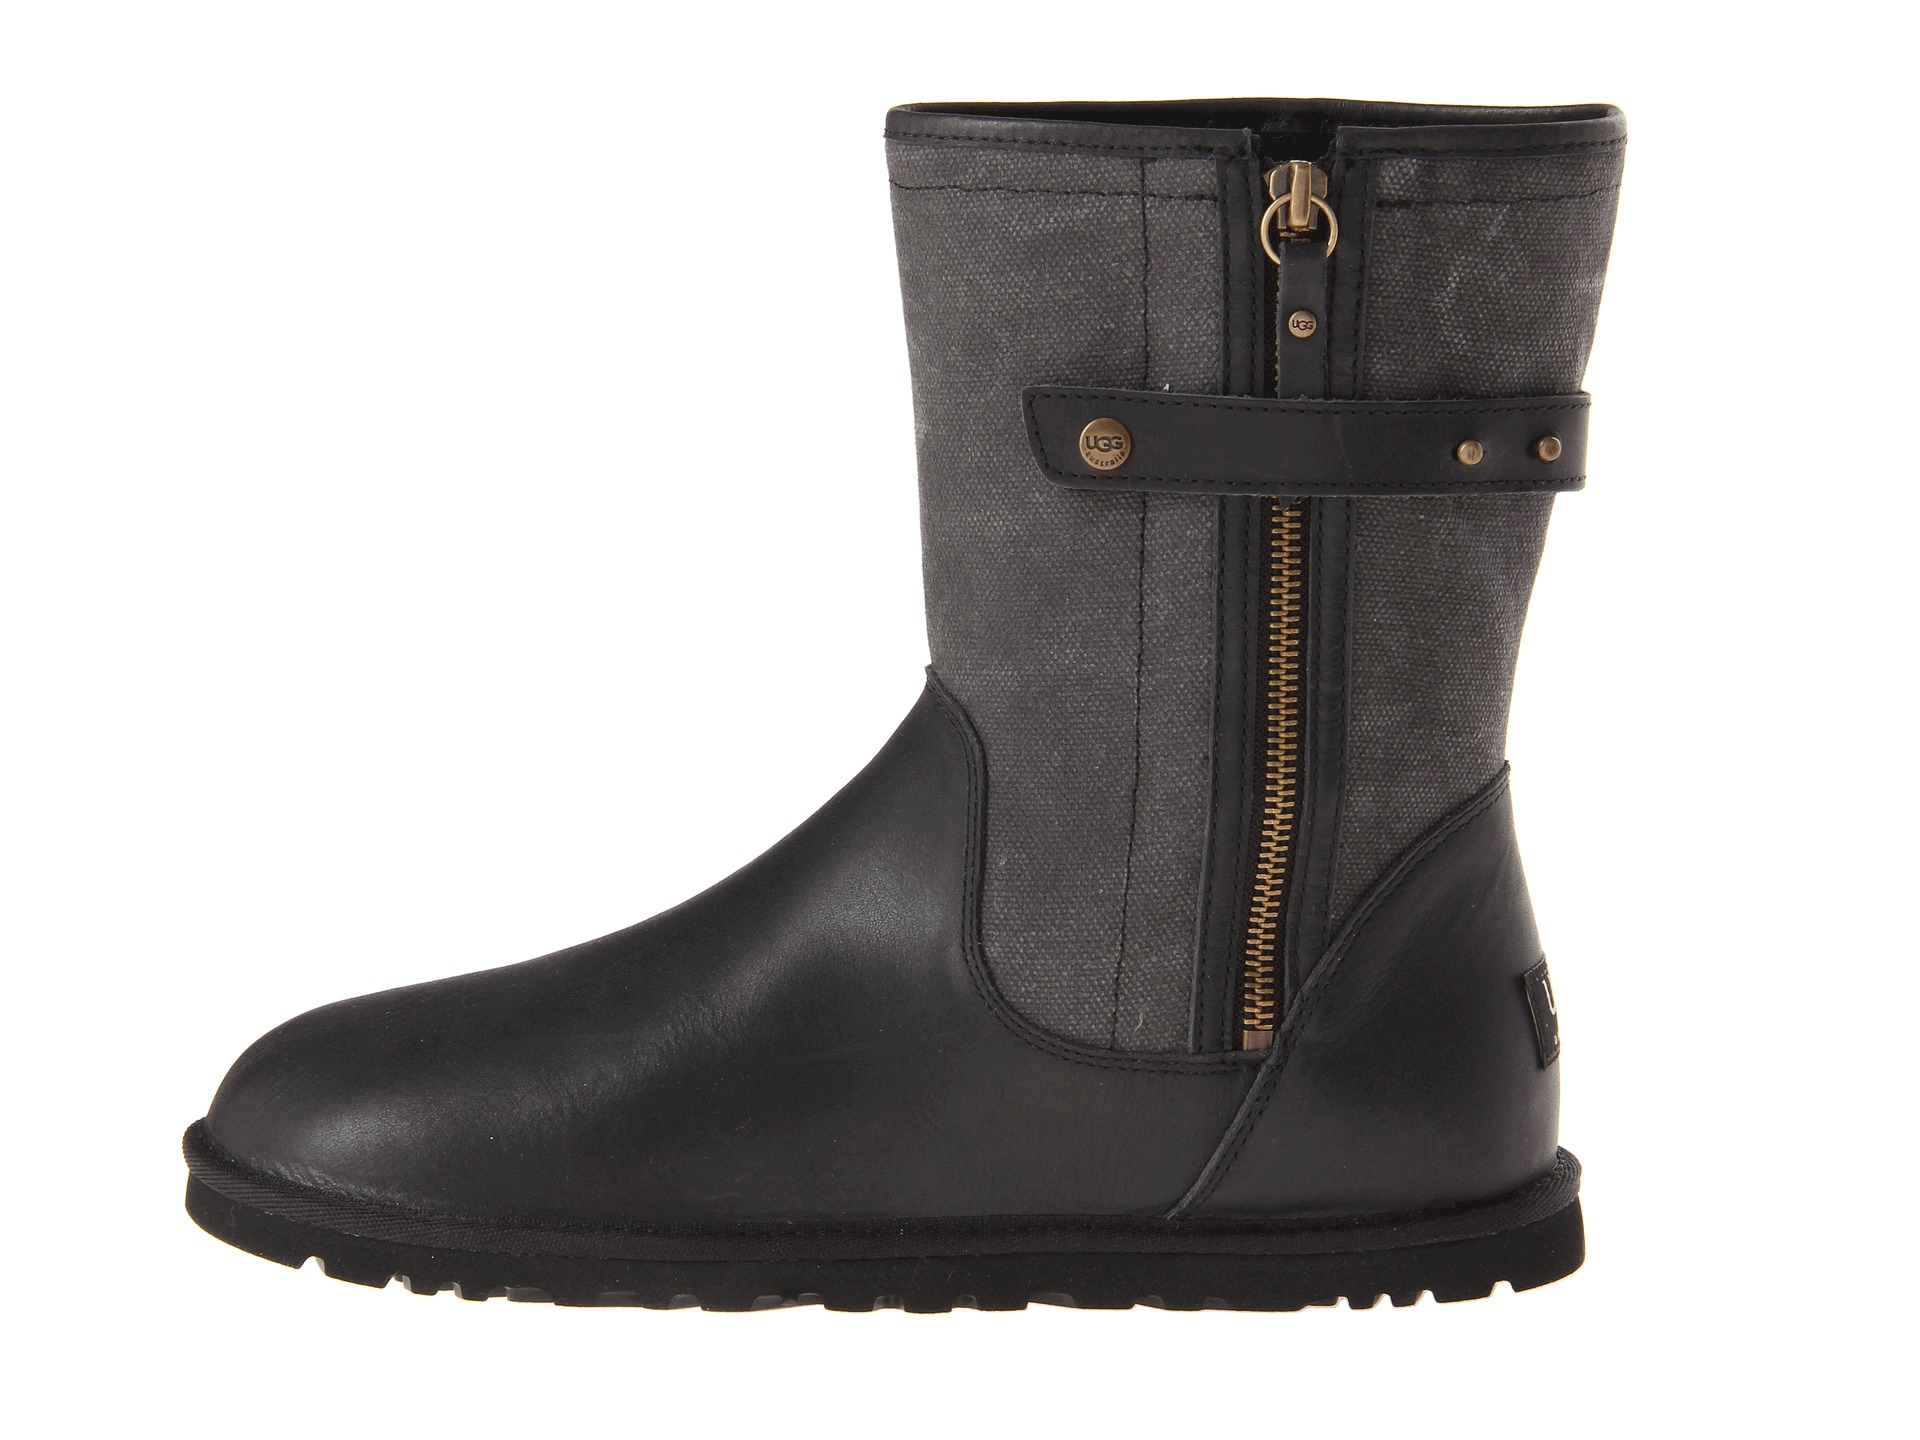 9a962410372 Ugg Boots On Sale Hills - cheap watches mgc-gas.com